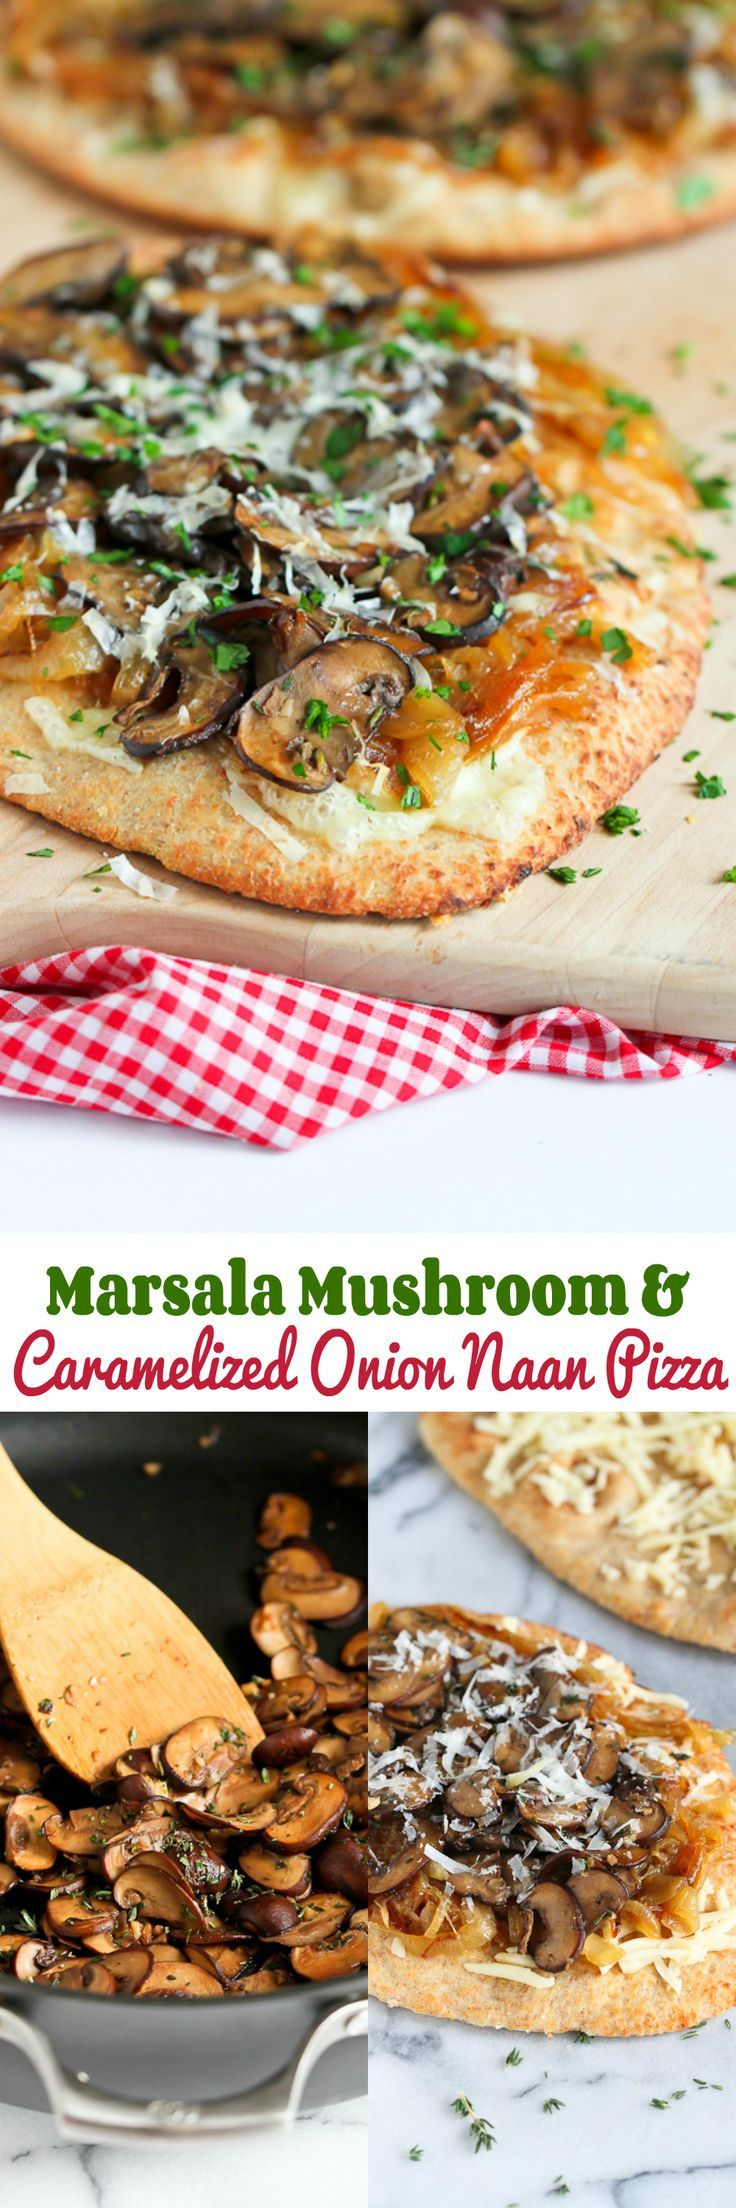 Marsala Mushroom and Caramelized Onion Naan Pizza…Marsala, thyme, sweet onions and melted cheese makes for one tasty pizza! 389 calories and 9 Weight Watchers PP | cookincanuck.com #recipe (Melted Cheese Snacks)